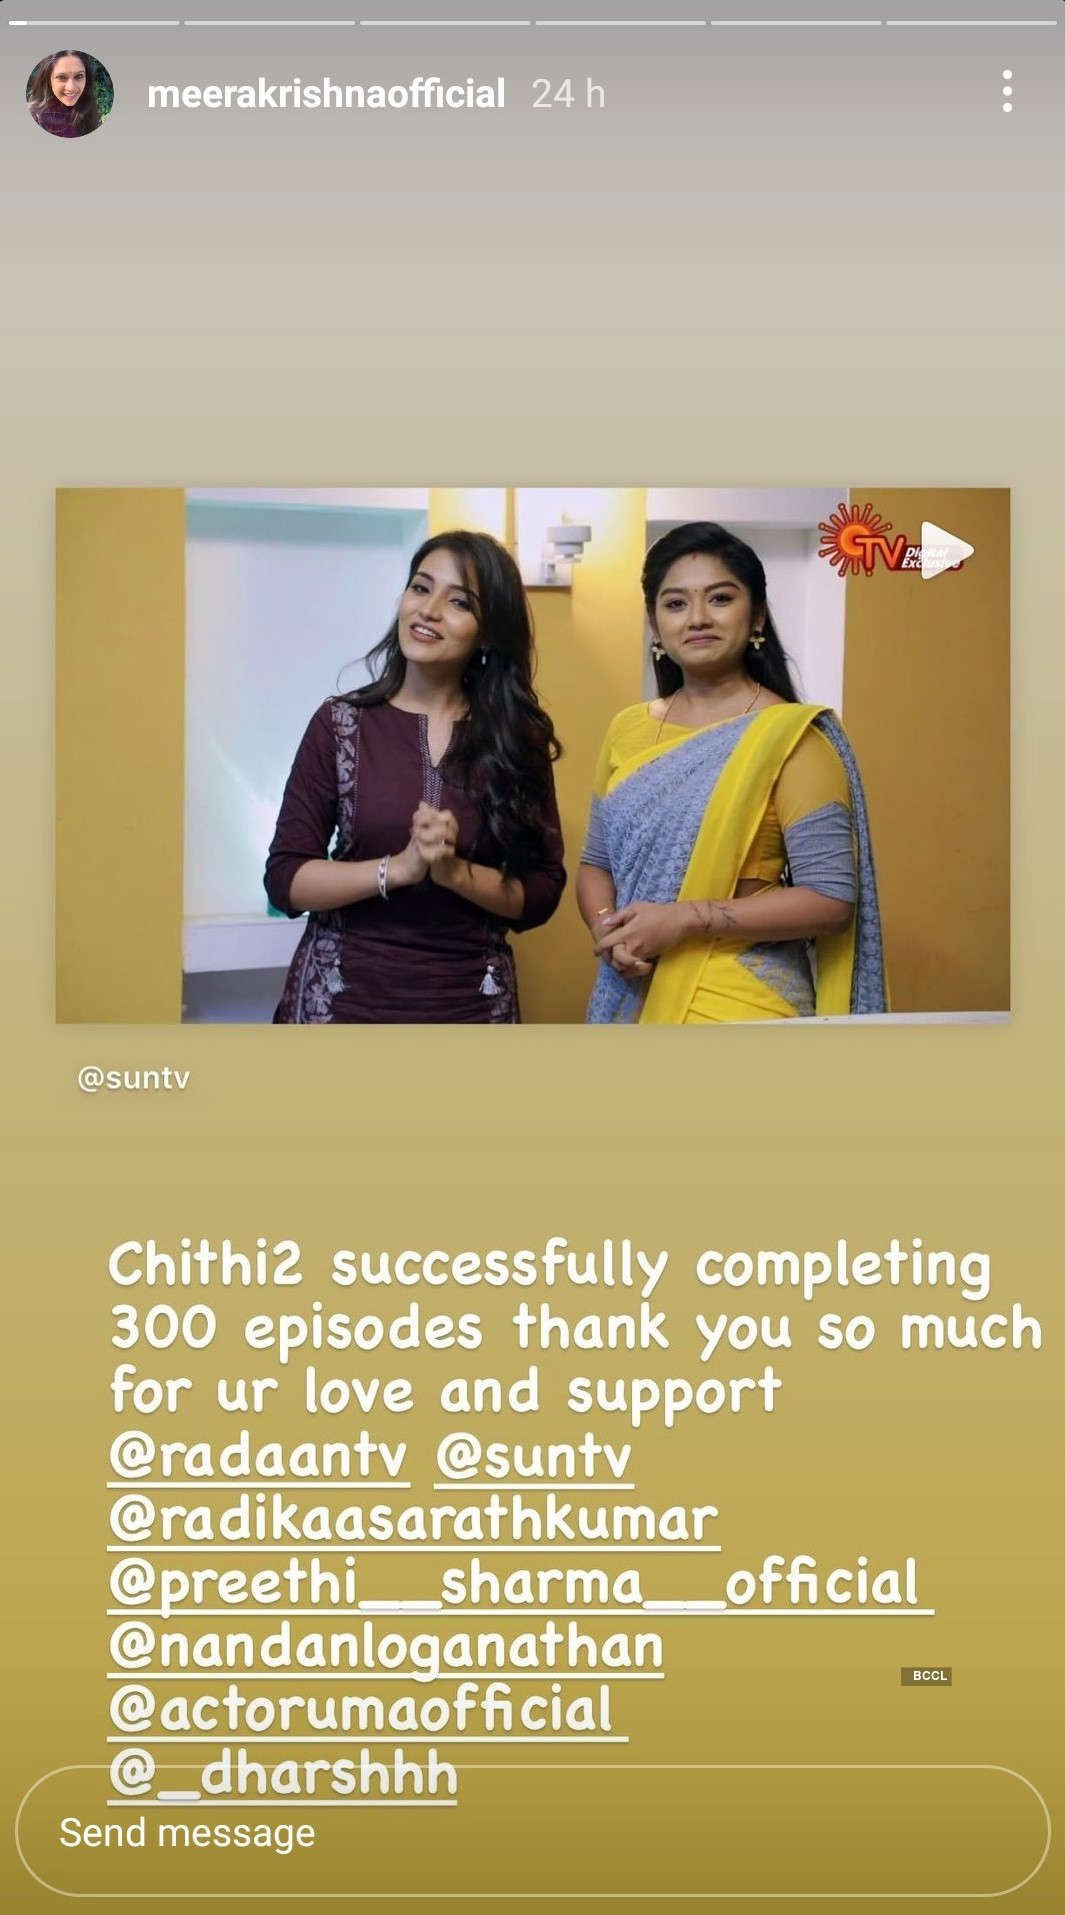 Chithi 2 completes 300 episodes; Meera Krishna and Dharshna Sripal Golecha fans